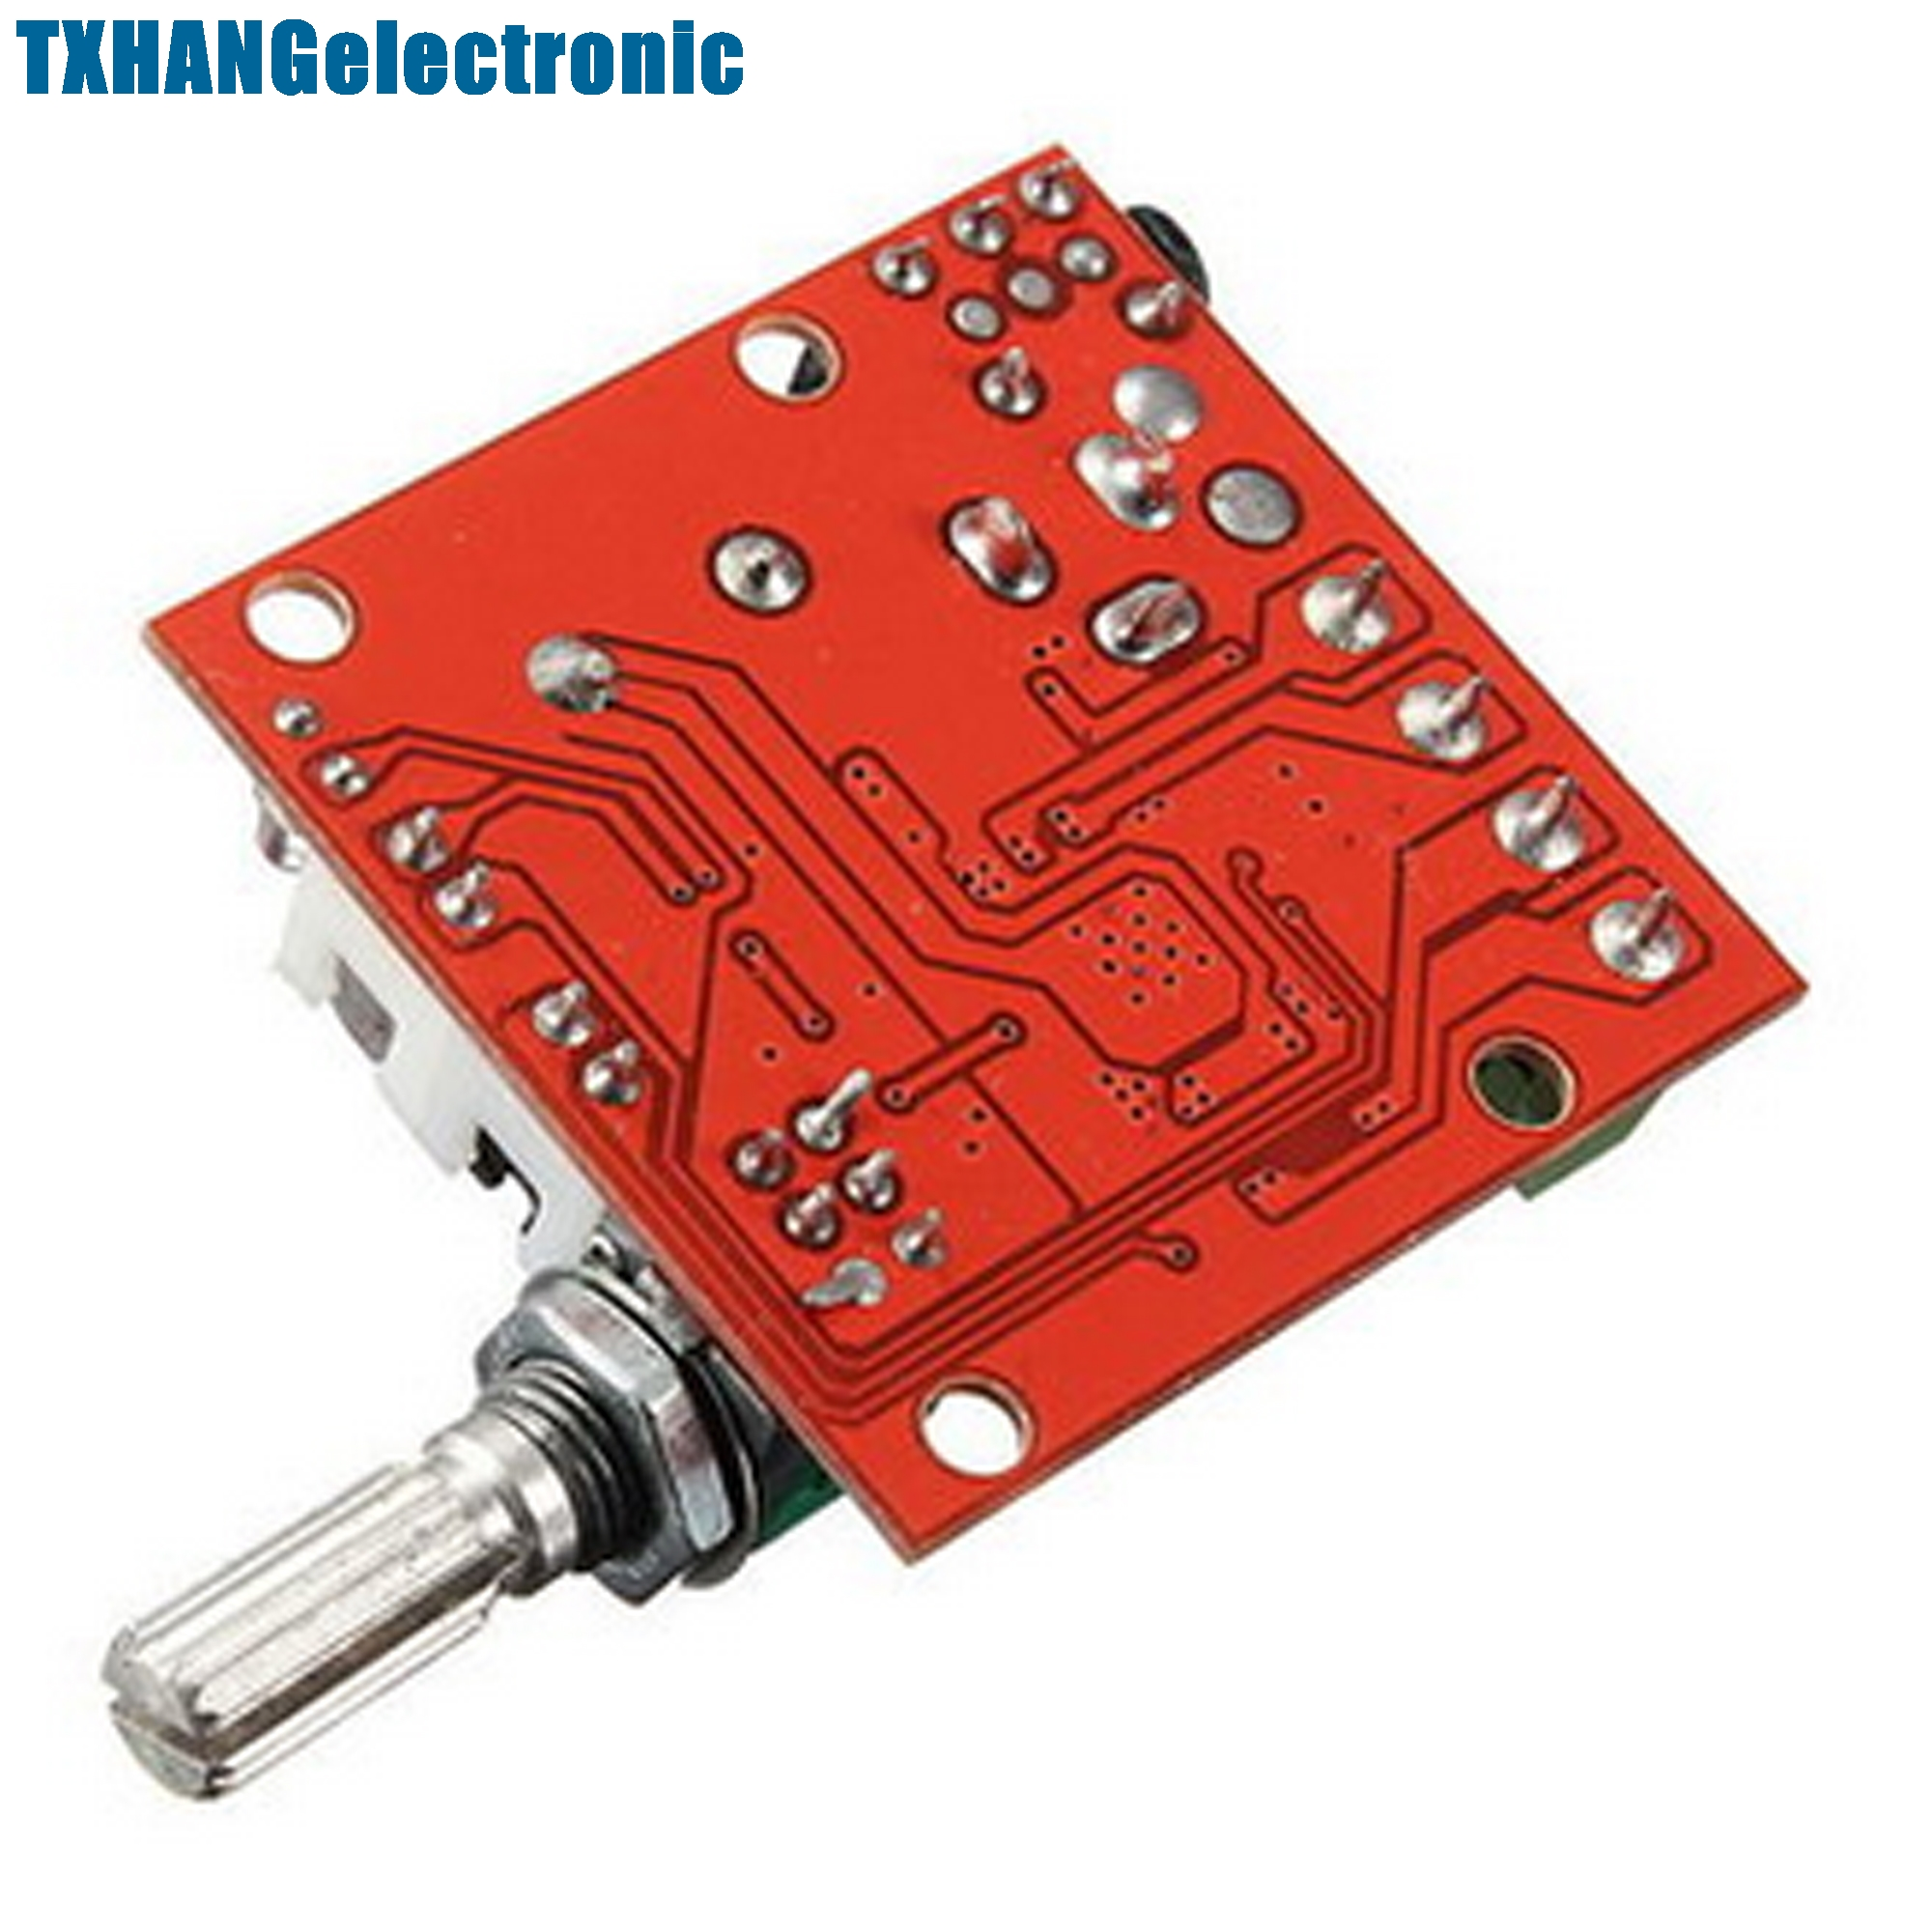 12v 2x10w Hi Fi Pam8610 Audio Stereo Amplifier Board Module Dual D 20w Power Circuit Based Tda2005 Class Channel In Integrated Circuits From Electronic Components Supplies On